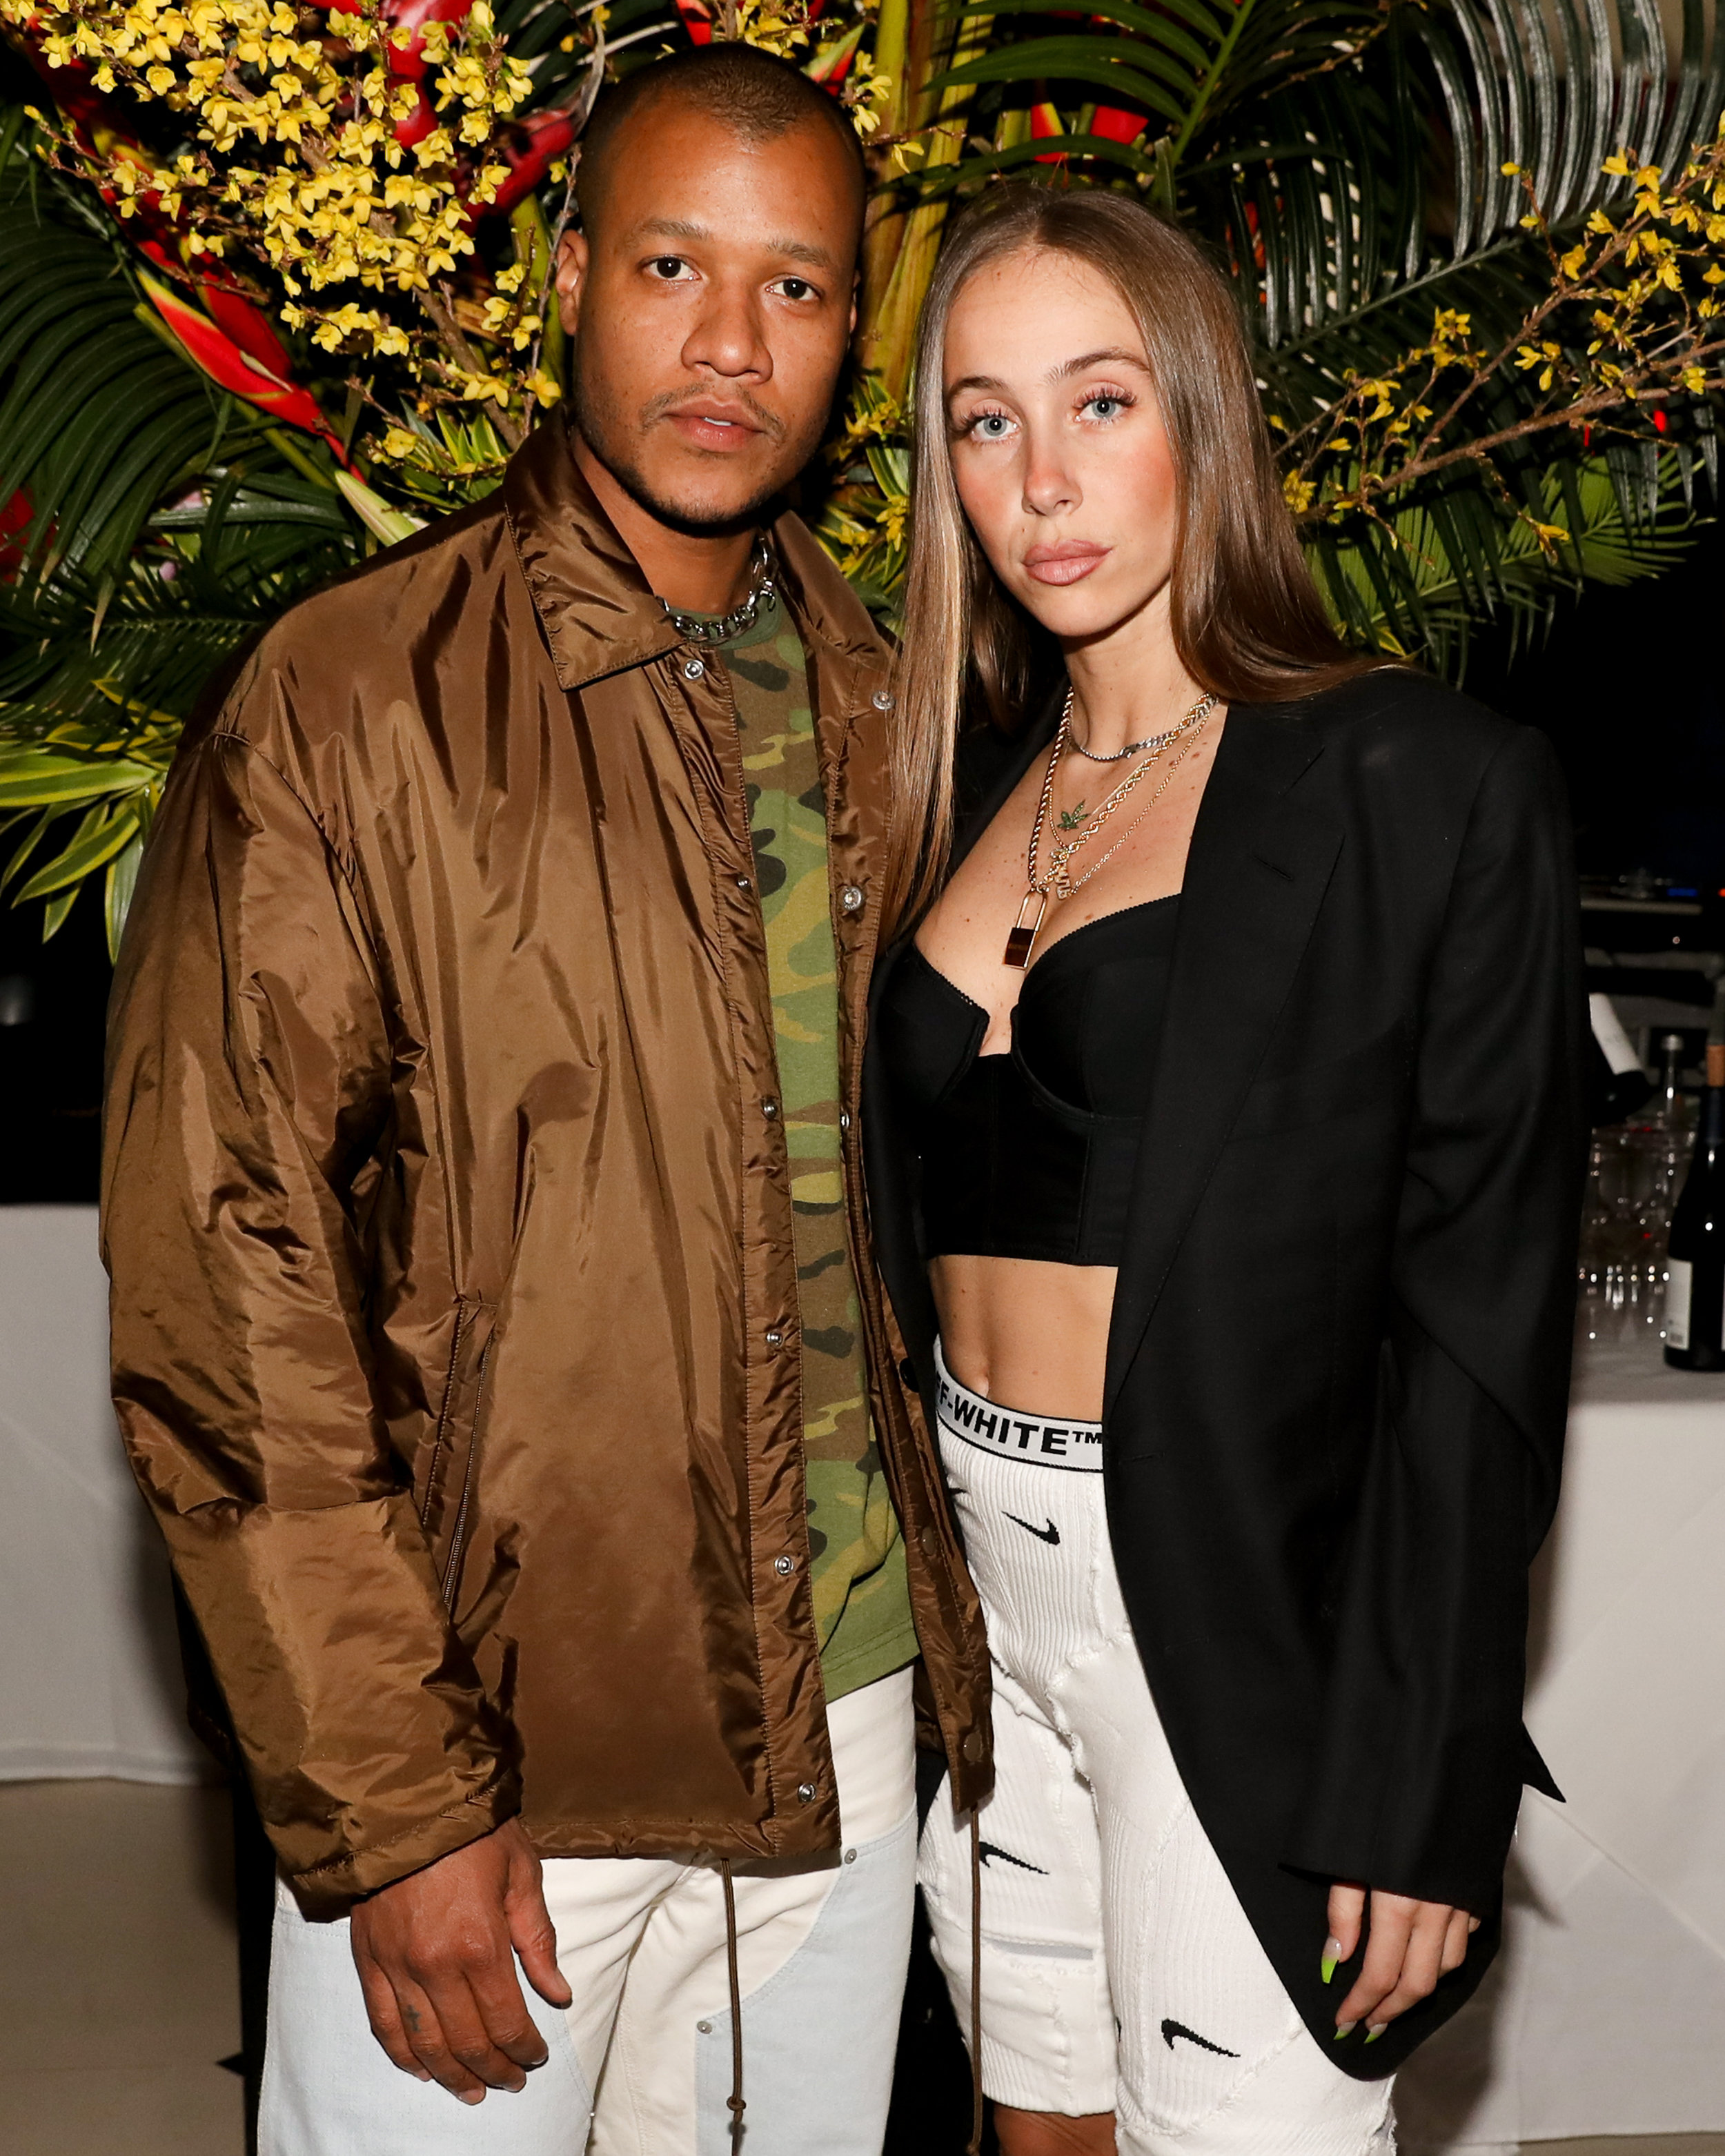 From Left To Right: Heron Preston and Sabrina Albarello attend The Opening of The Dr. Barbara Sturm Zero Bond Boutique & Spa on Thursday, May 2, 2019. Photographed by Neil Rasmus/BFA.